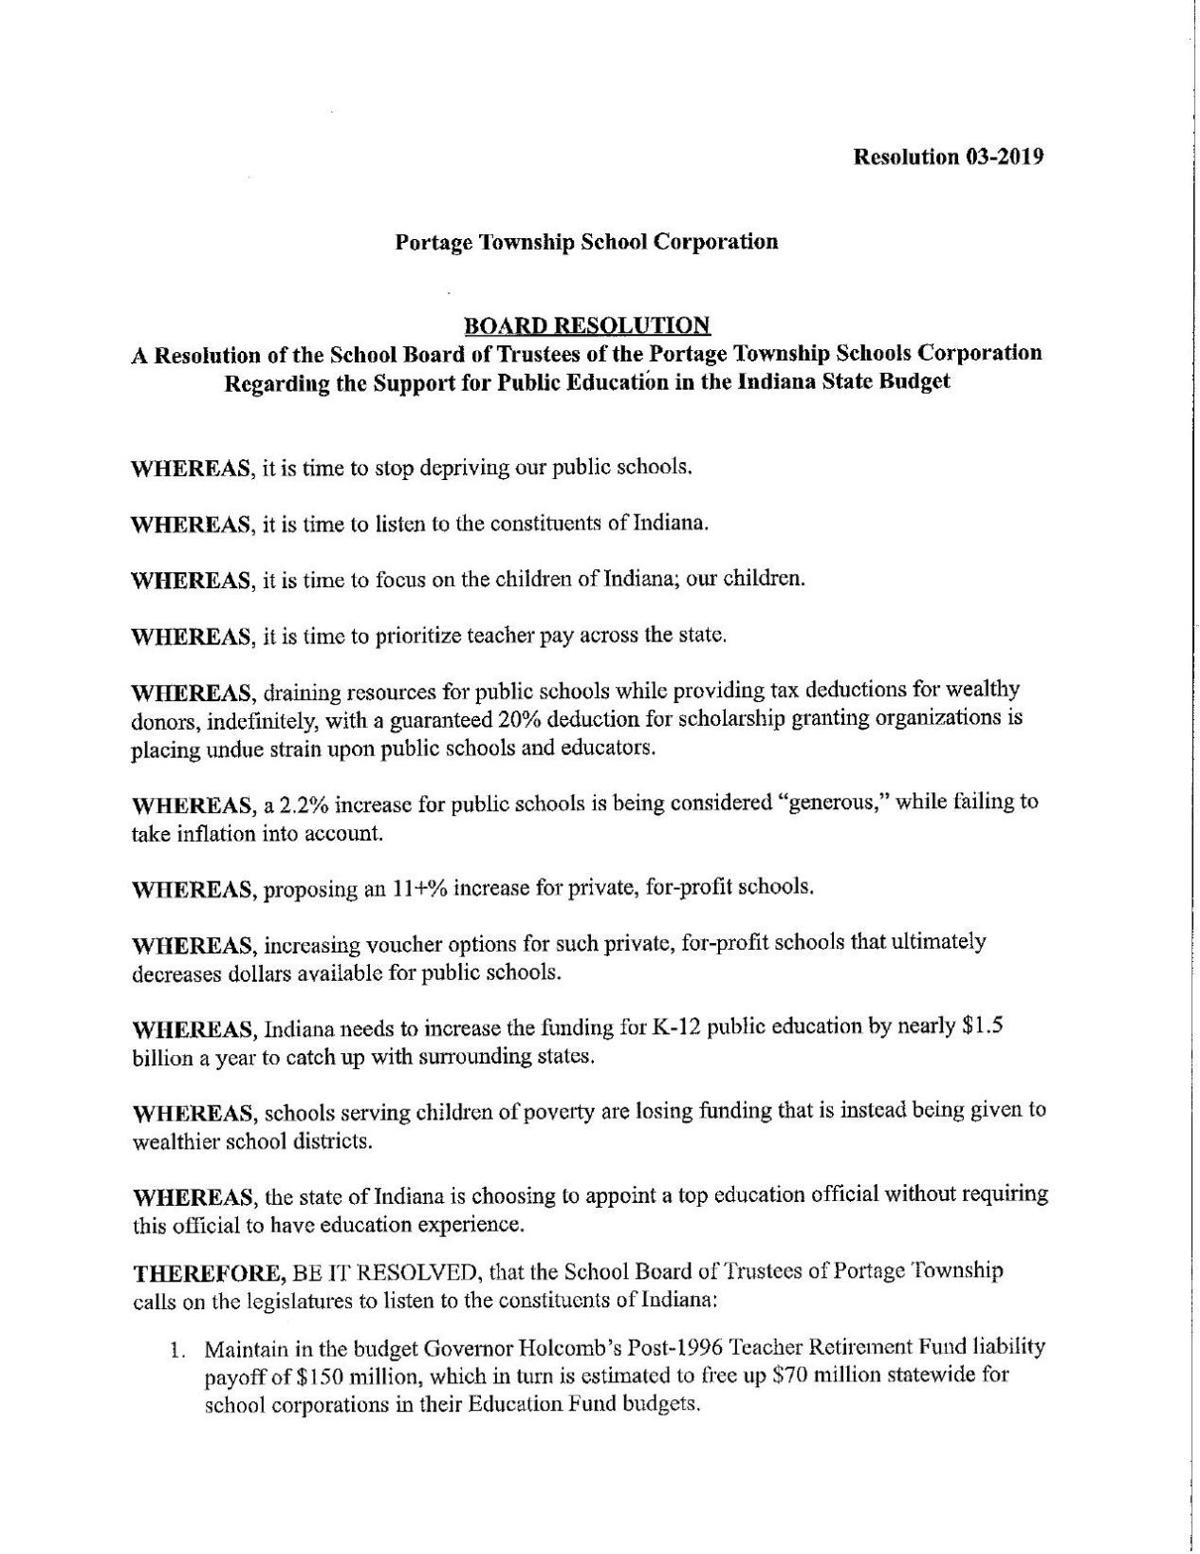 Portage Resolution 03-2019 Support of Public Education